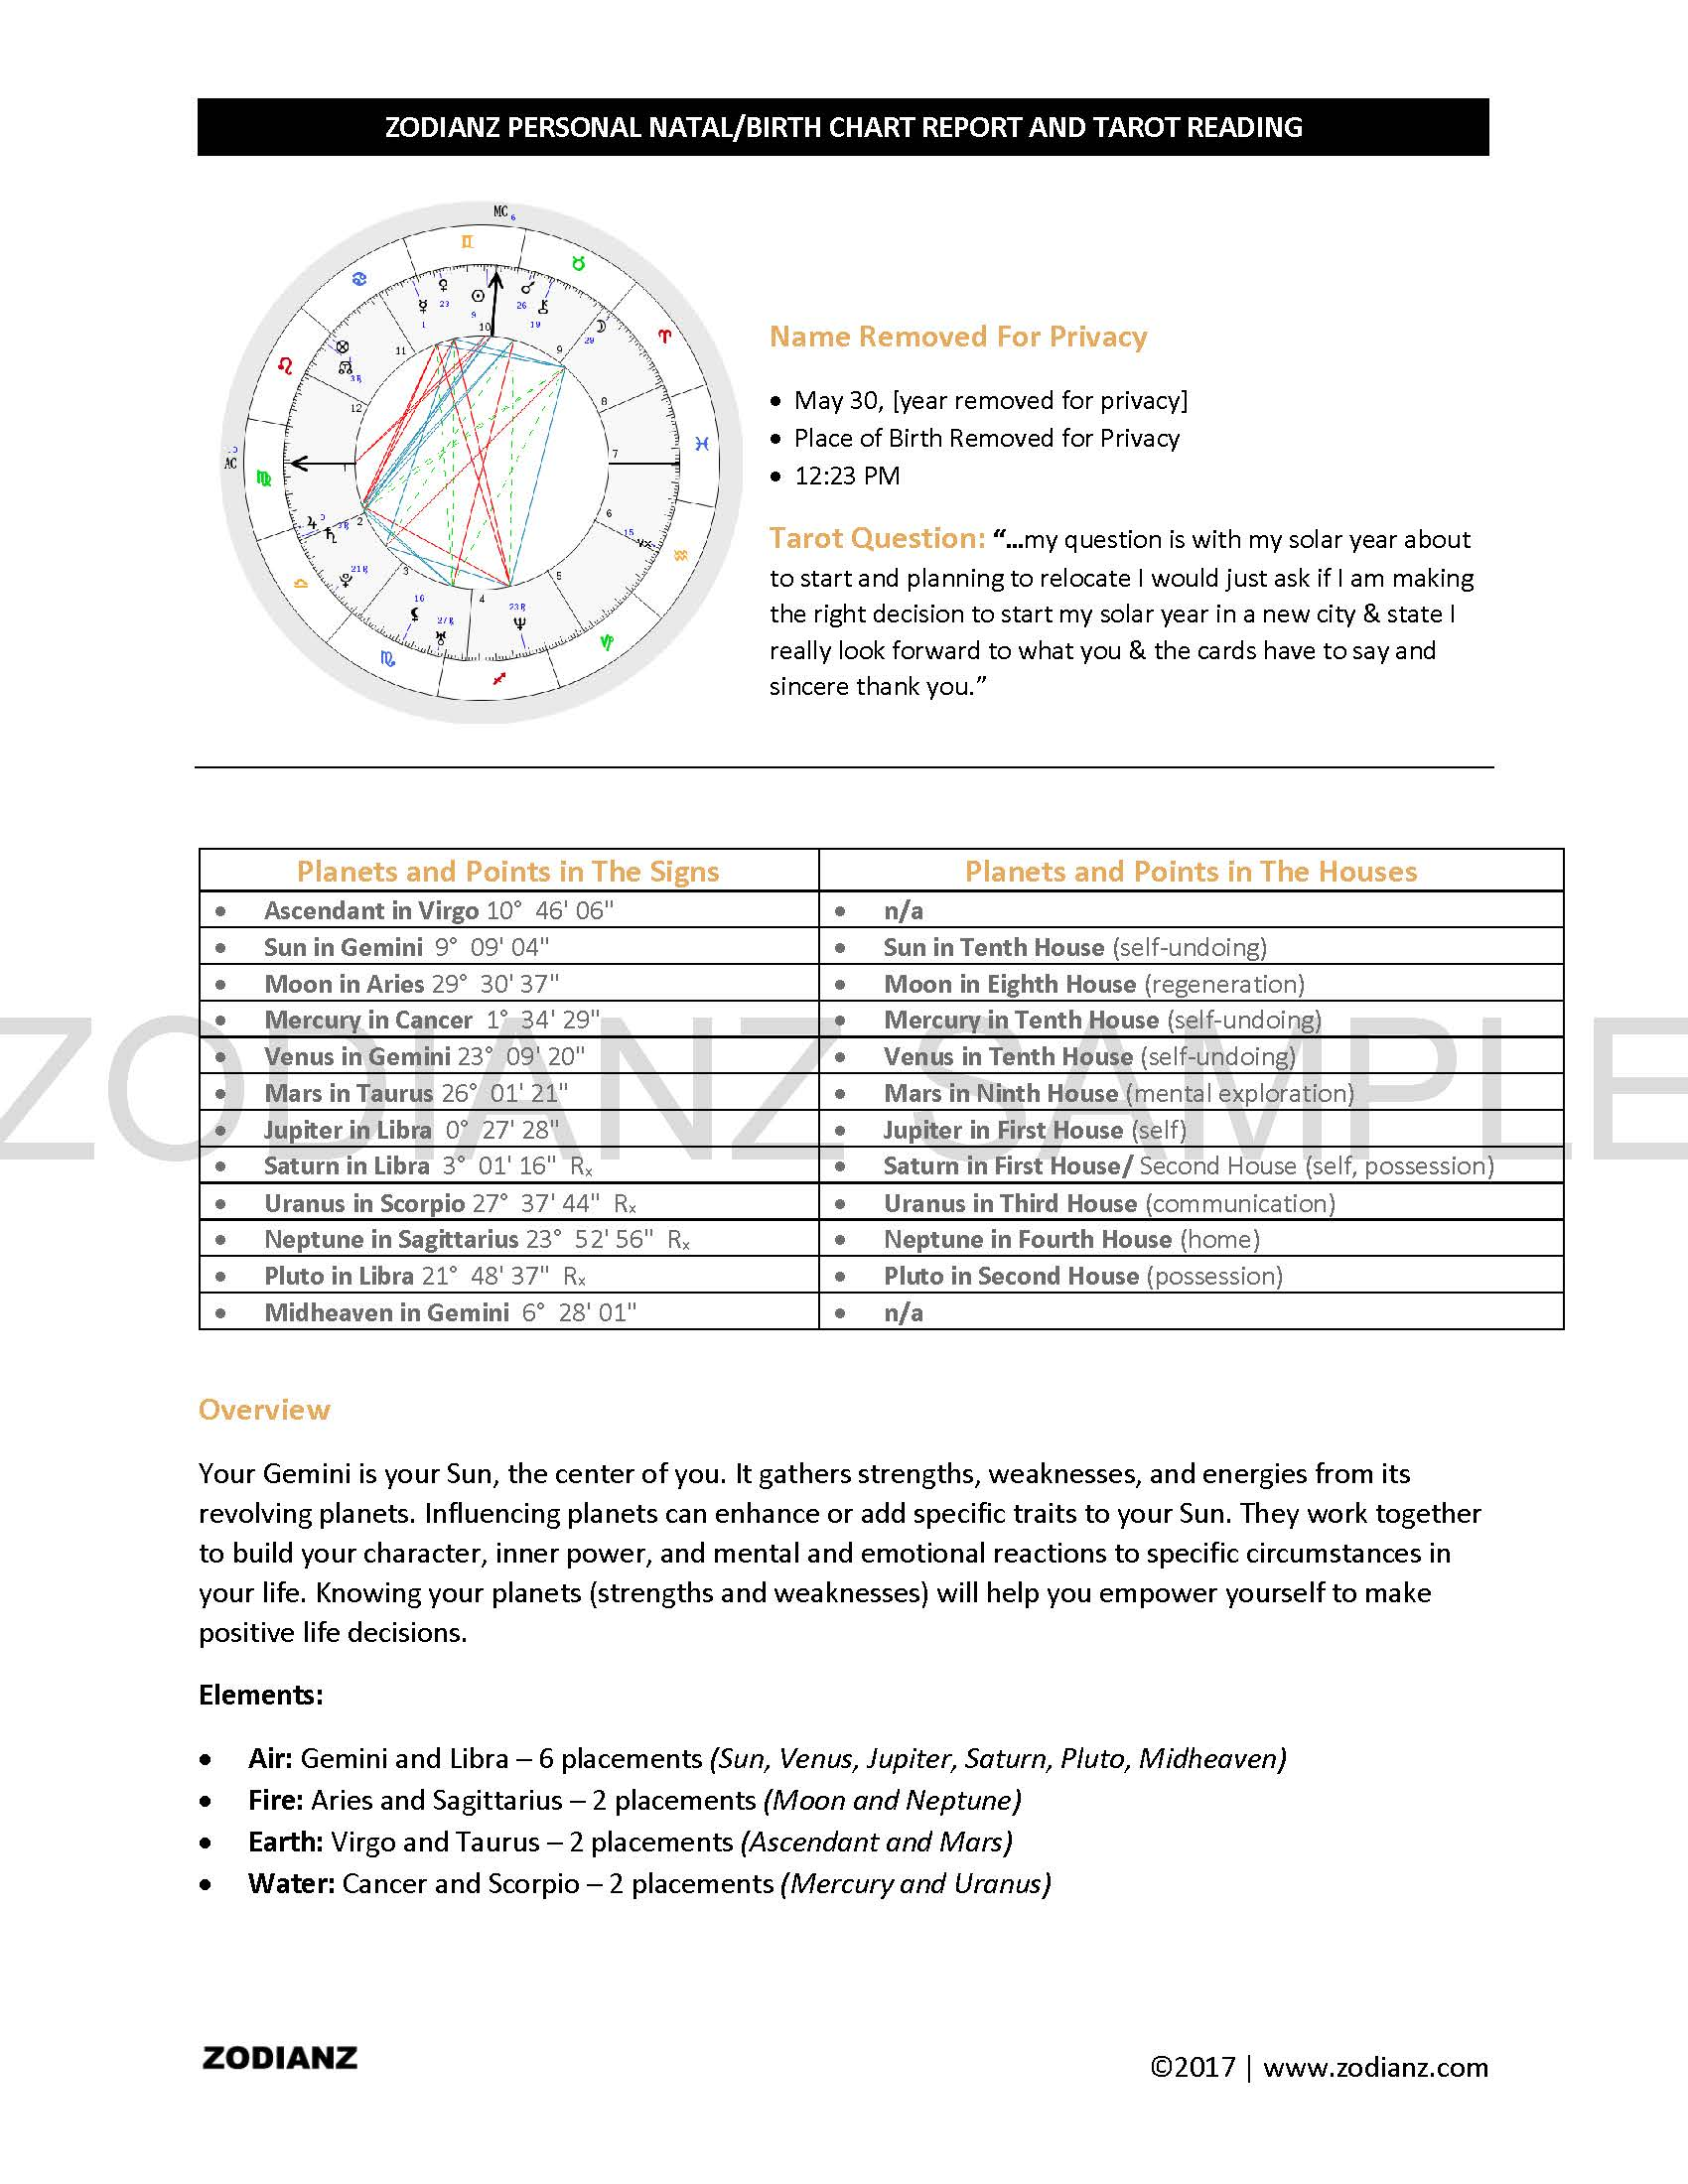 Get a written personal birthnatal chart by joan zodianz written personal birthnatal chart geenschuldenfo Image collections